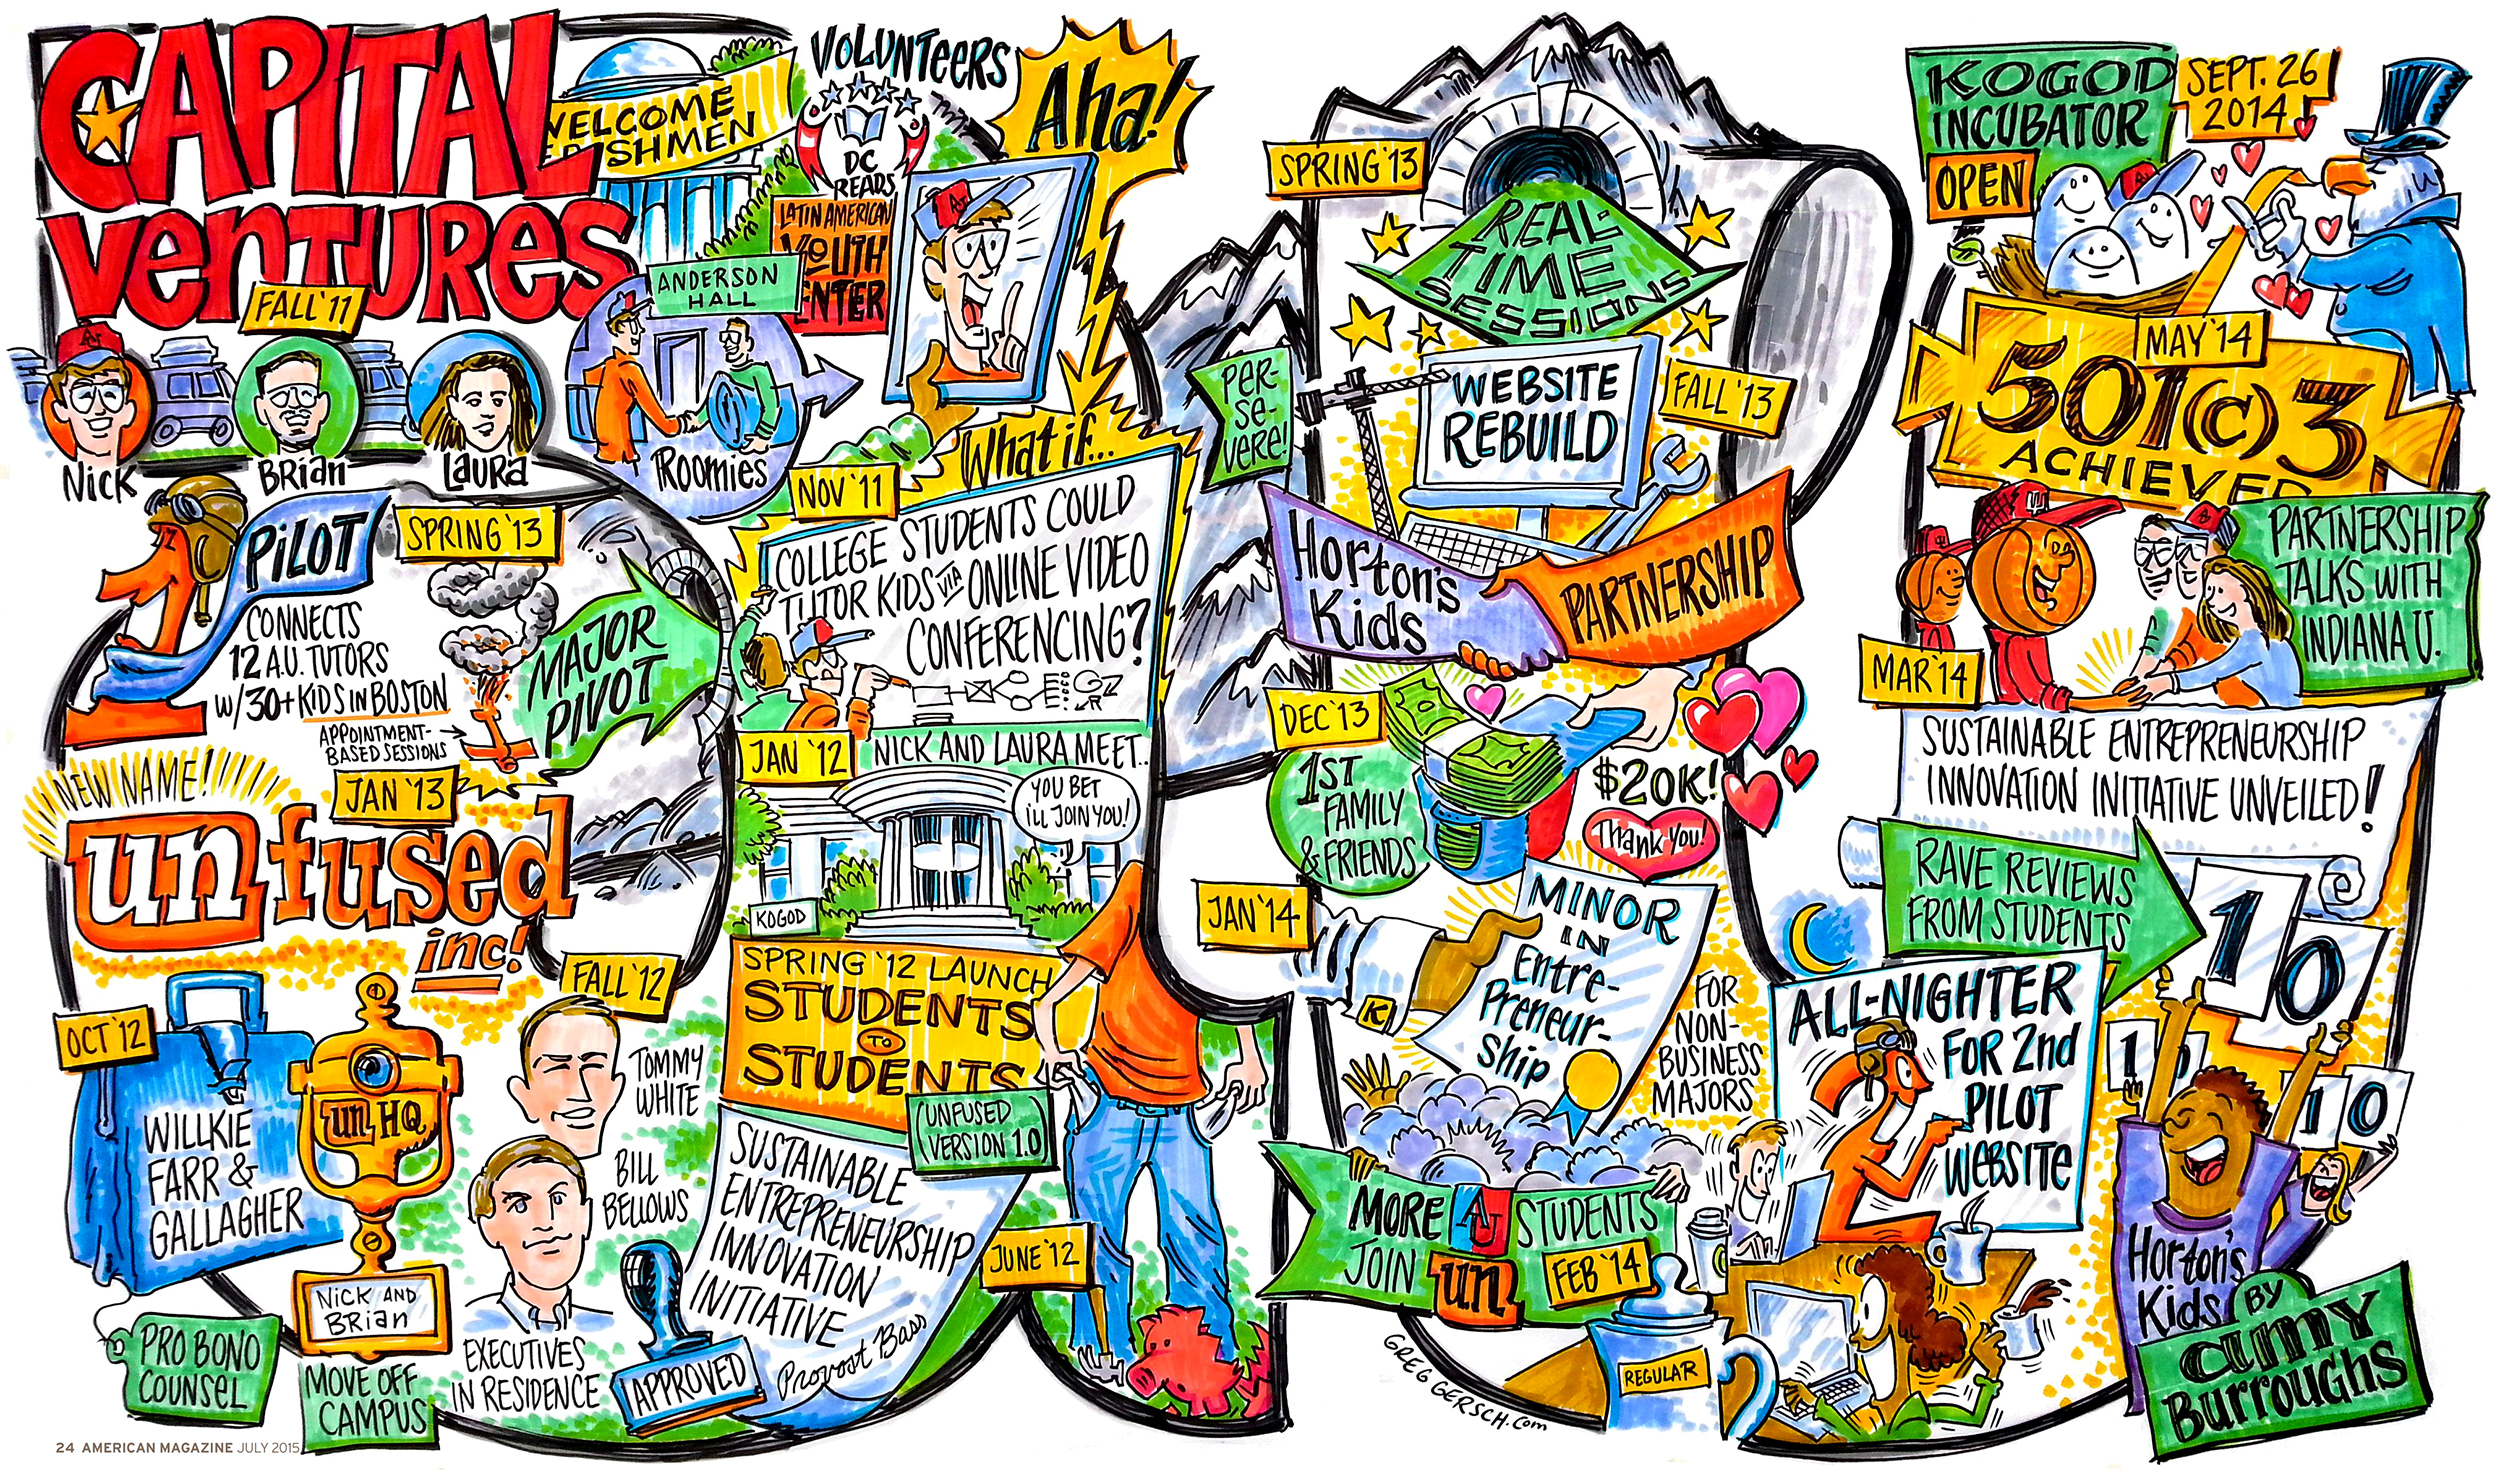 Studio Chart:  American  magazine spread in the style of Graphic Recording; American University - 4' x 6.5'